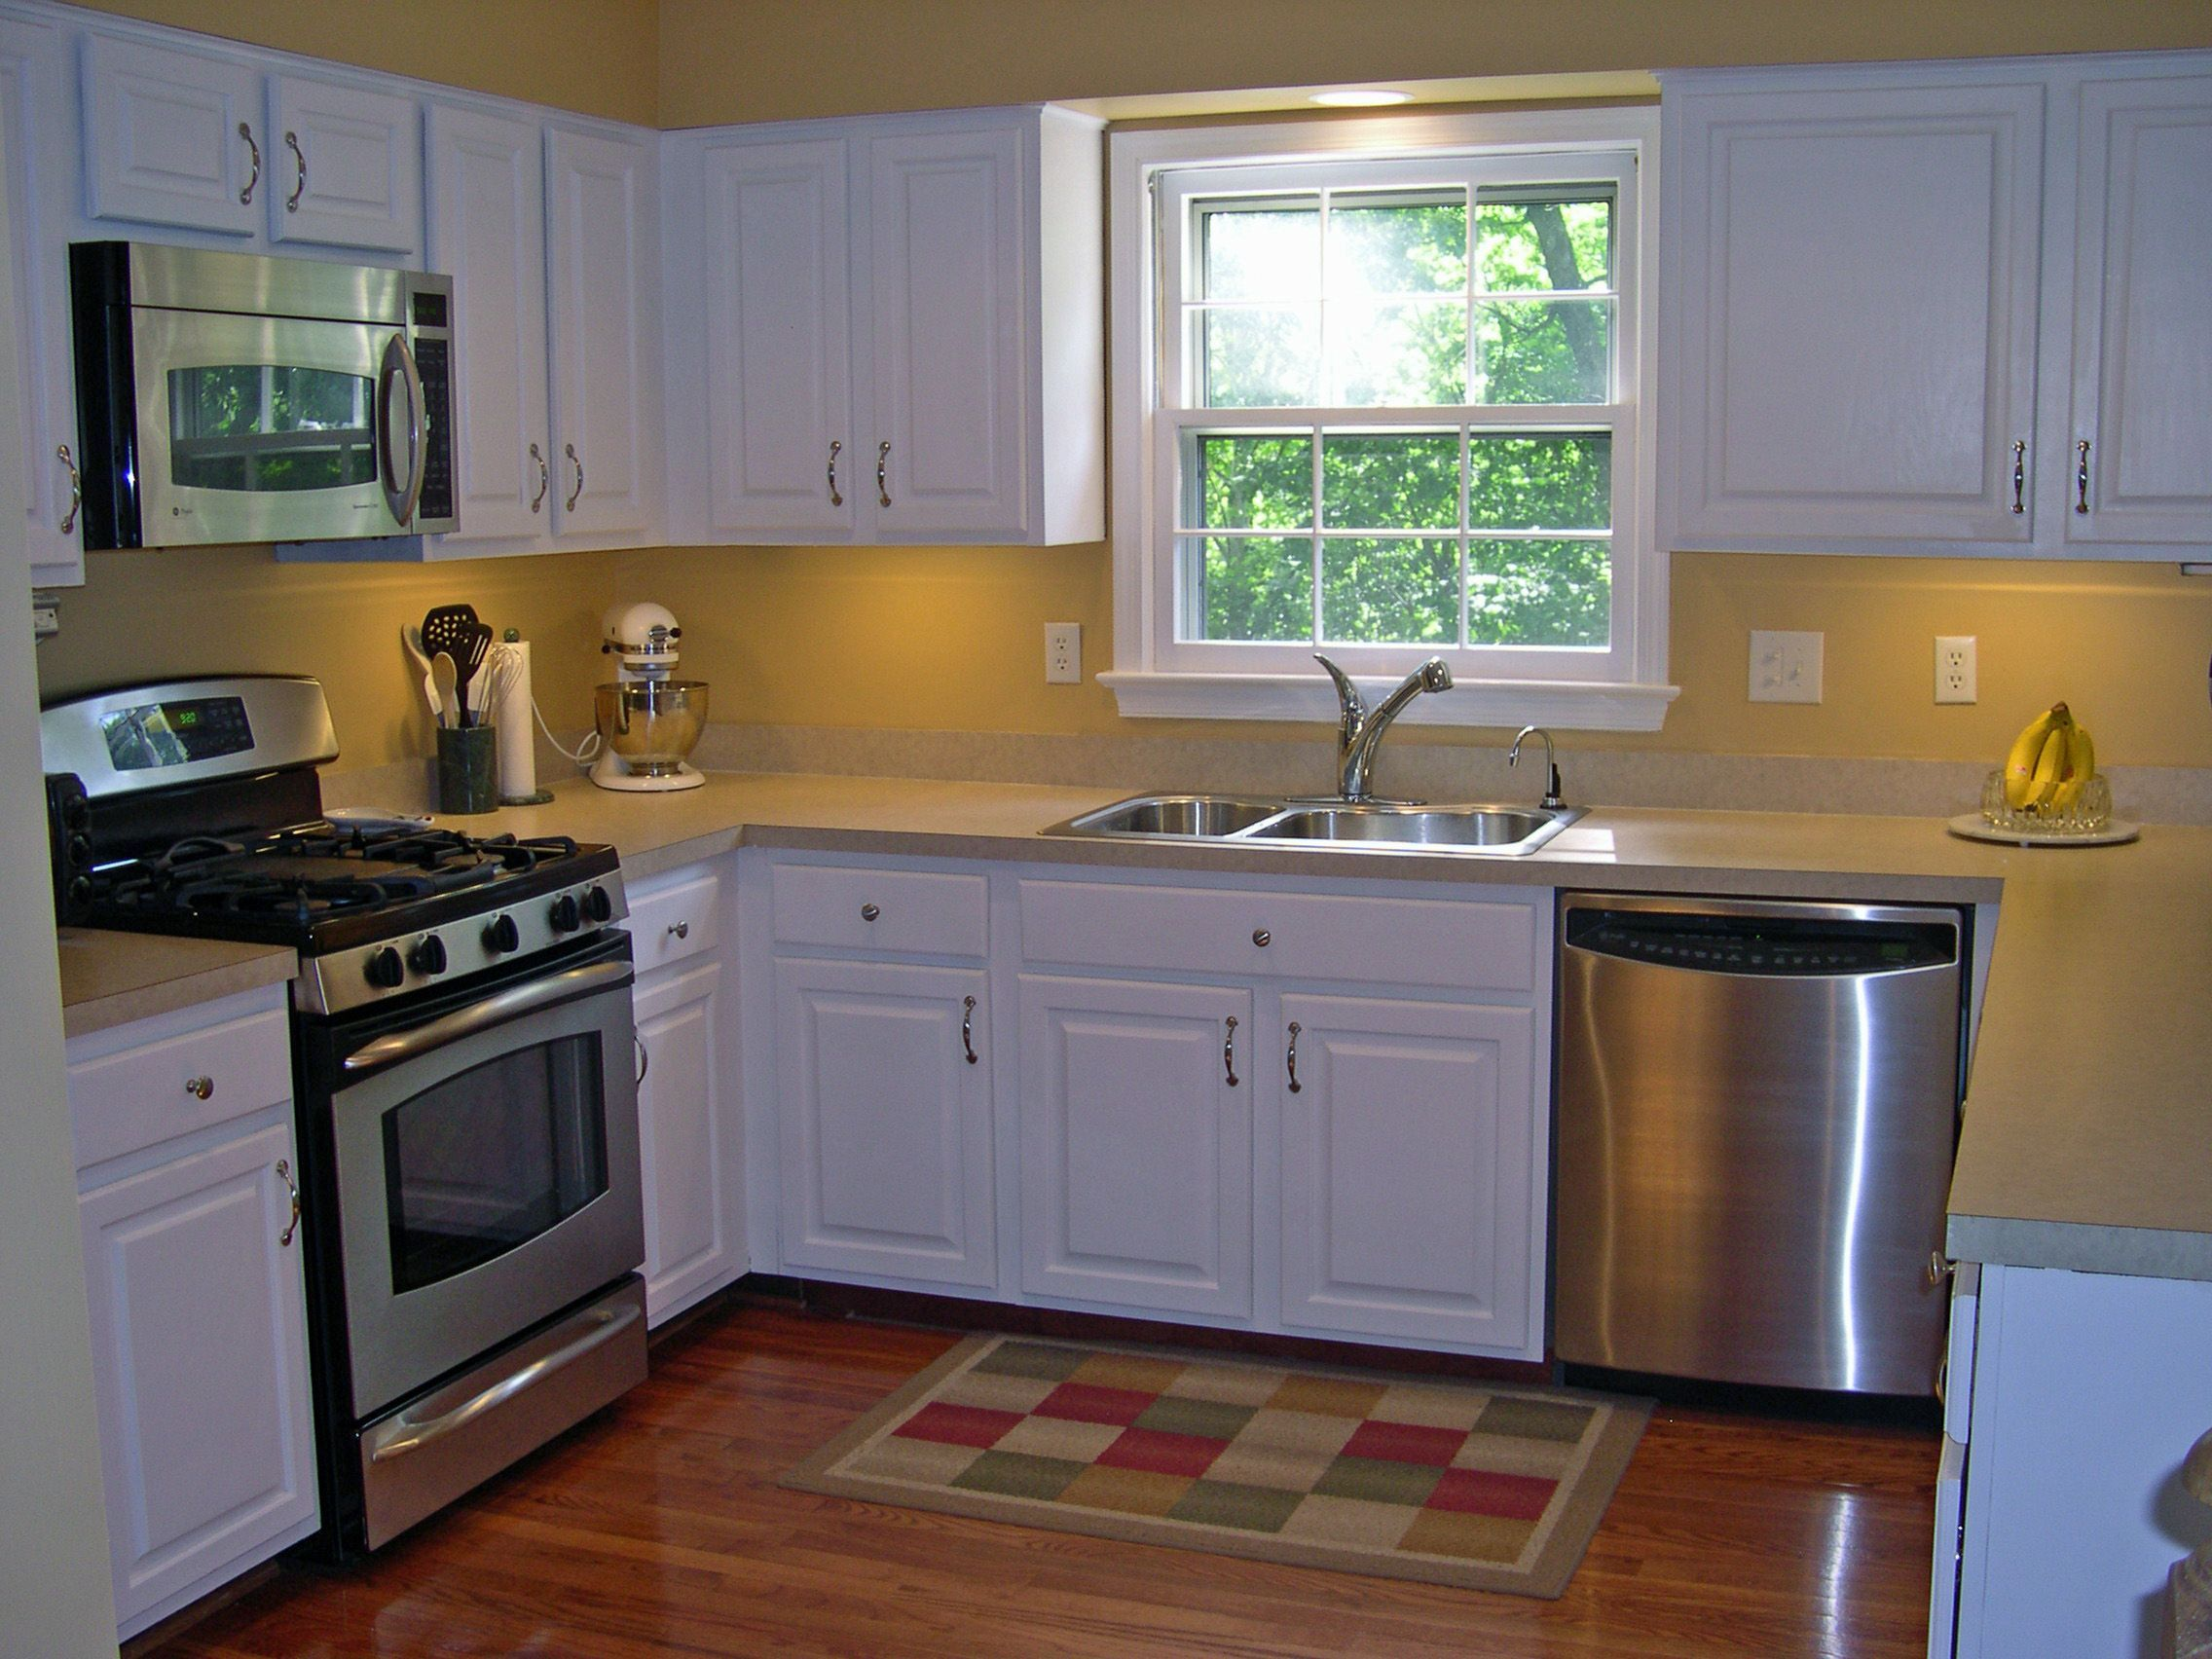 The Most Captivating Simple Kitchen Design For Middle Class Family Smallkitchenstorageideas Kitchen Remodel Small Simple Kitchen Design Kitchen Design Small